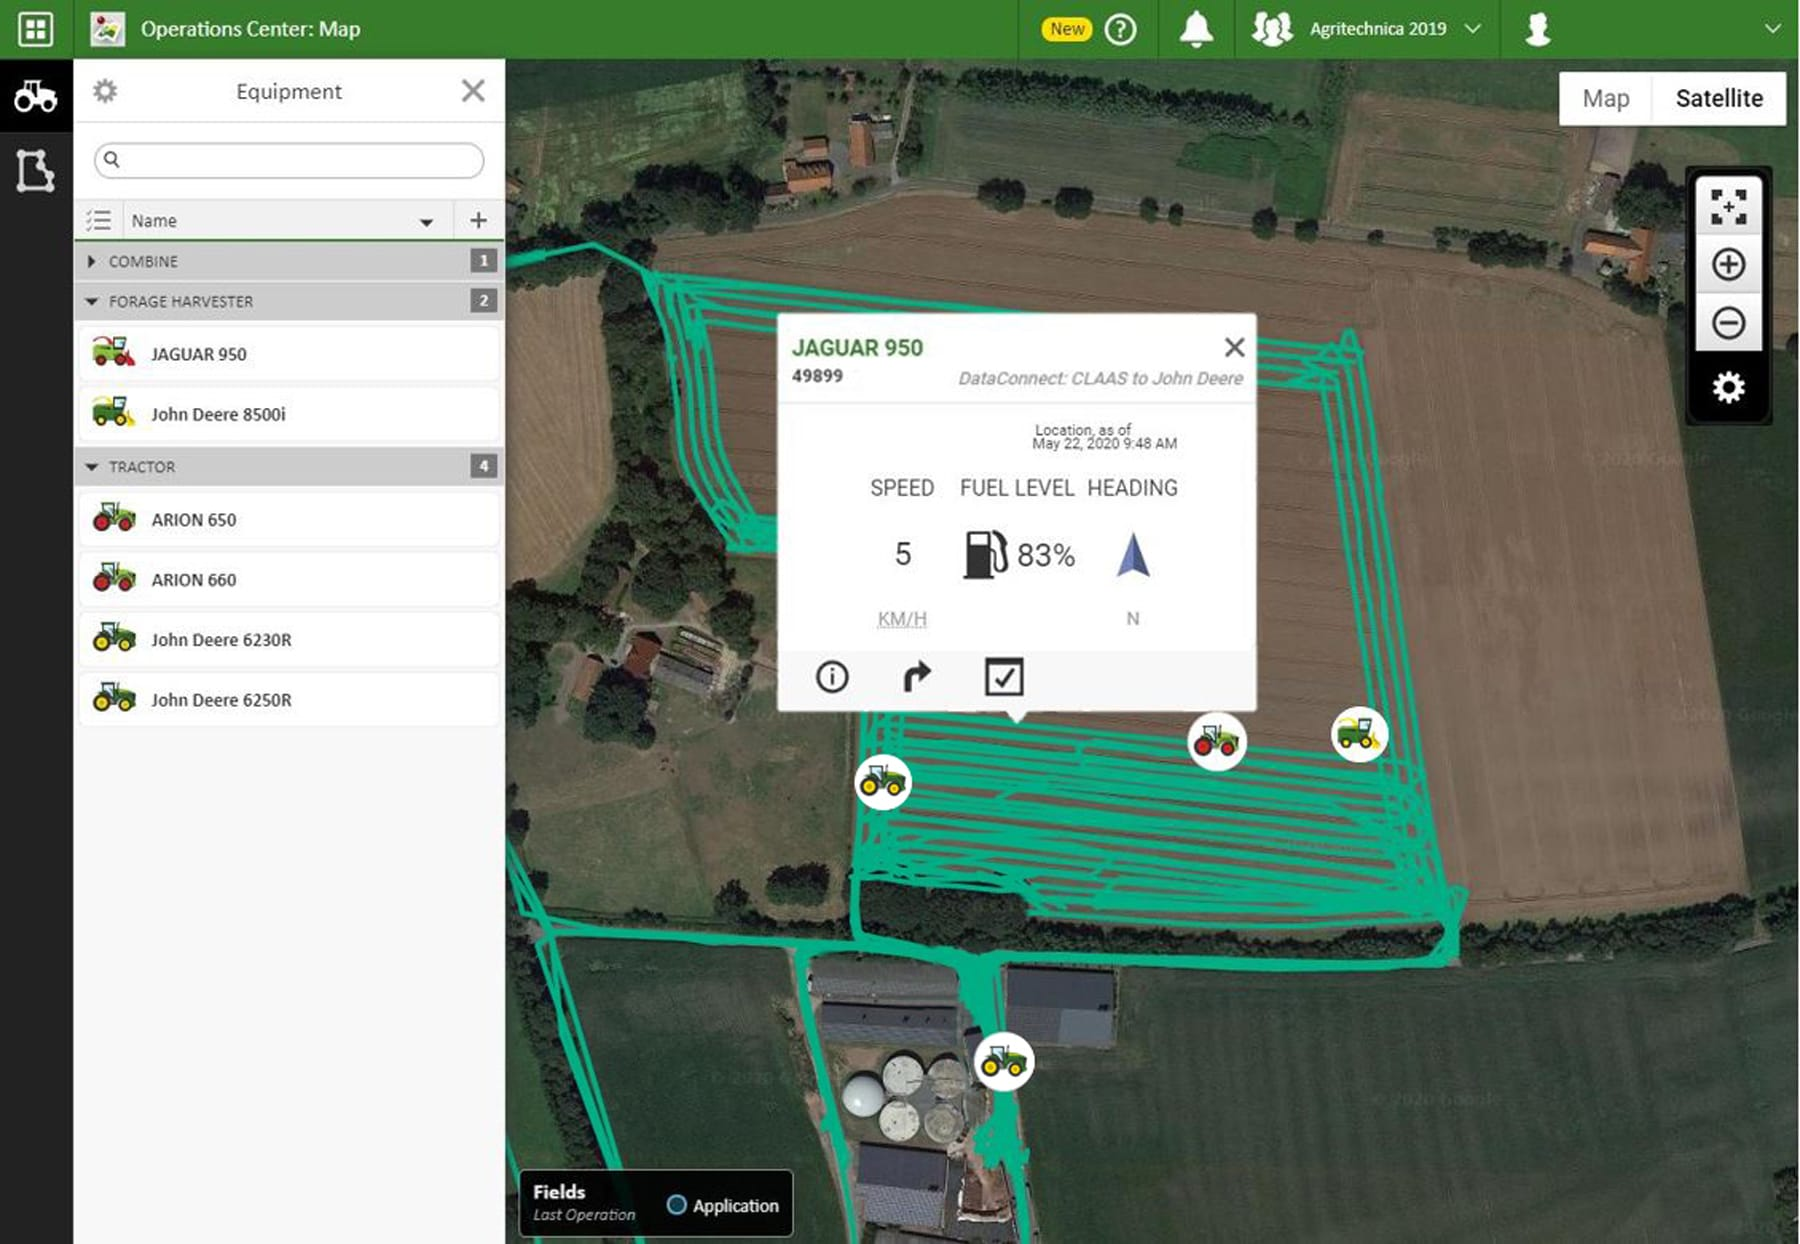 Macchine CLAAS visualizzate nel John Deere Operations Center